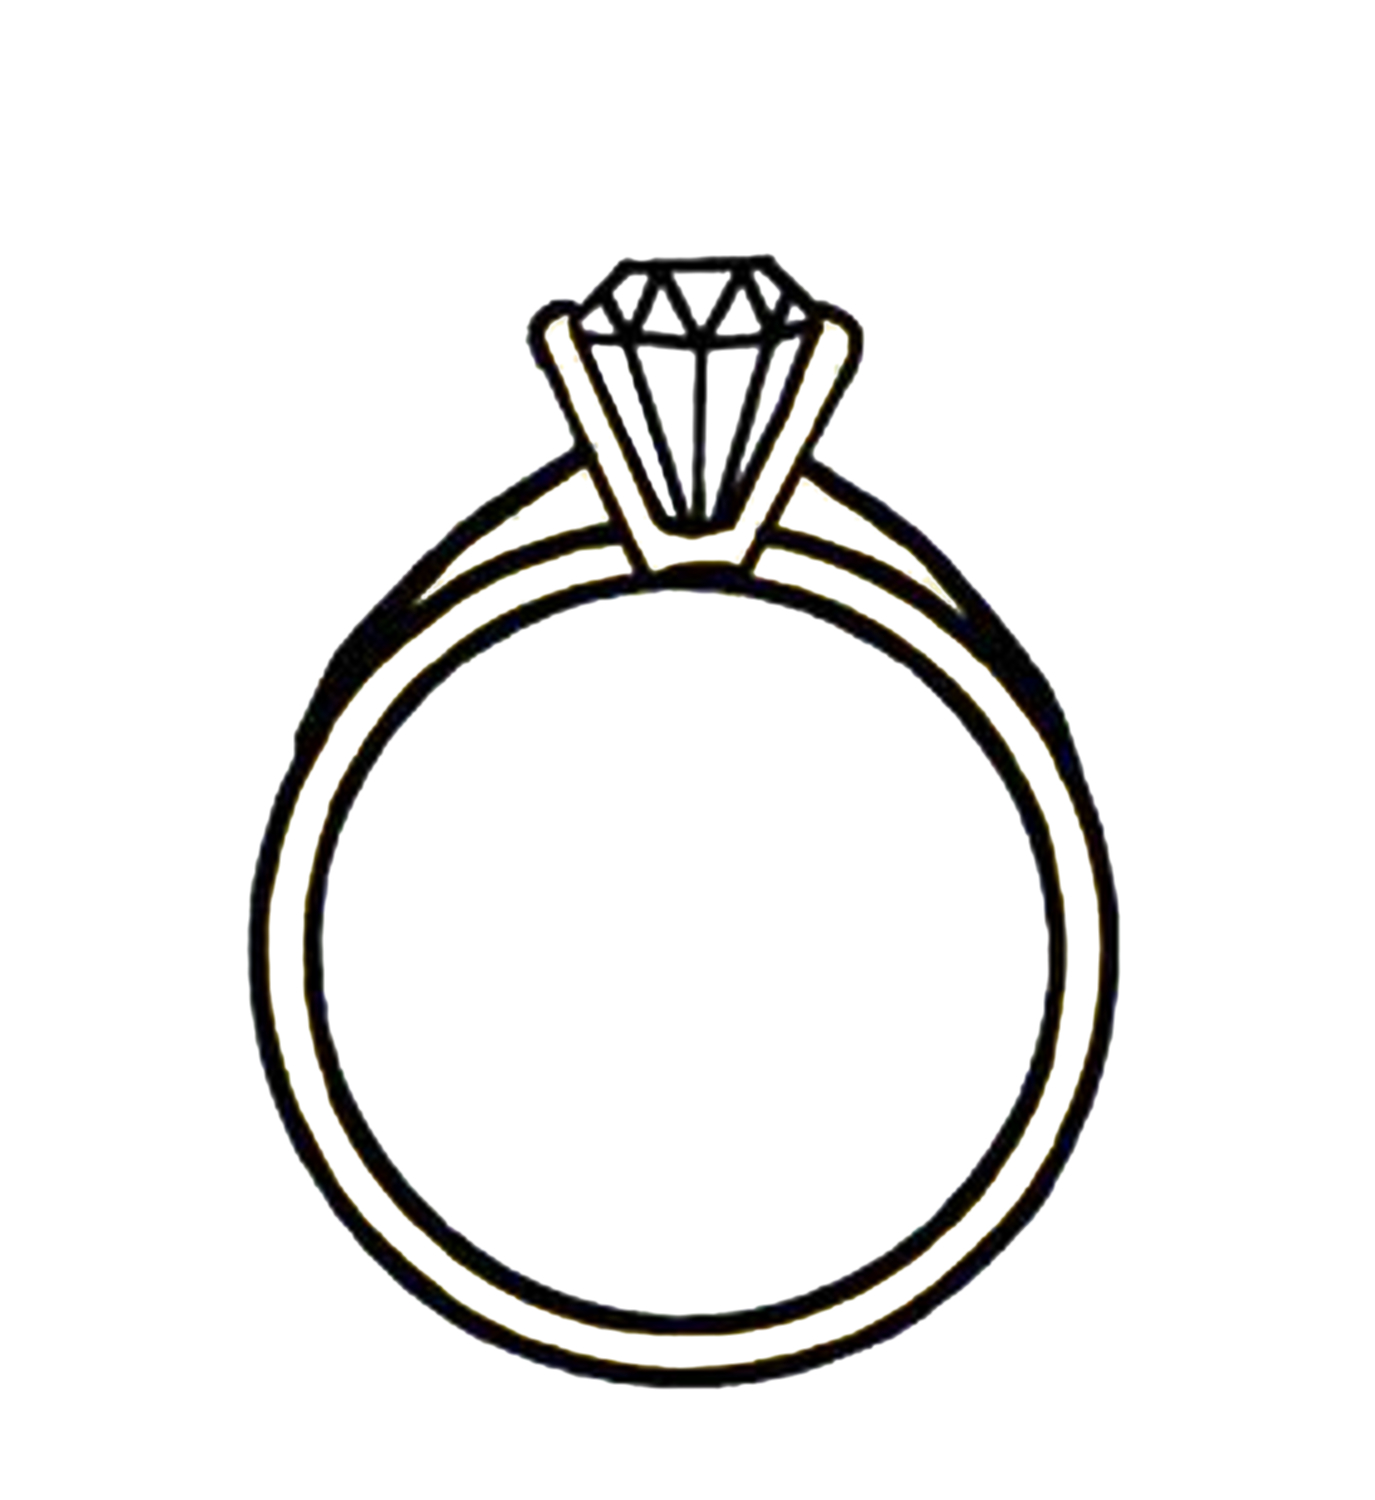 ring clipart black and white - Wedding Ring Clip Art